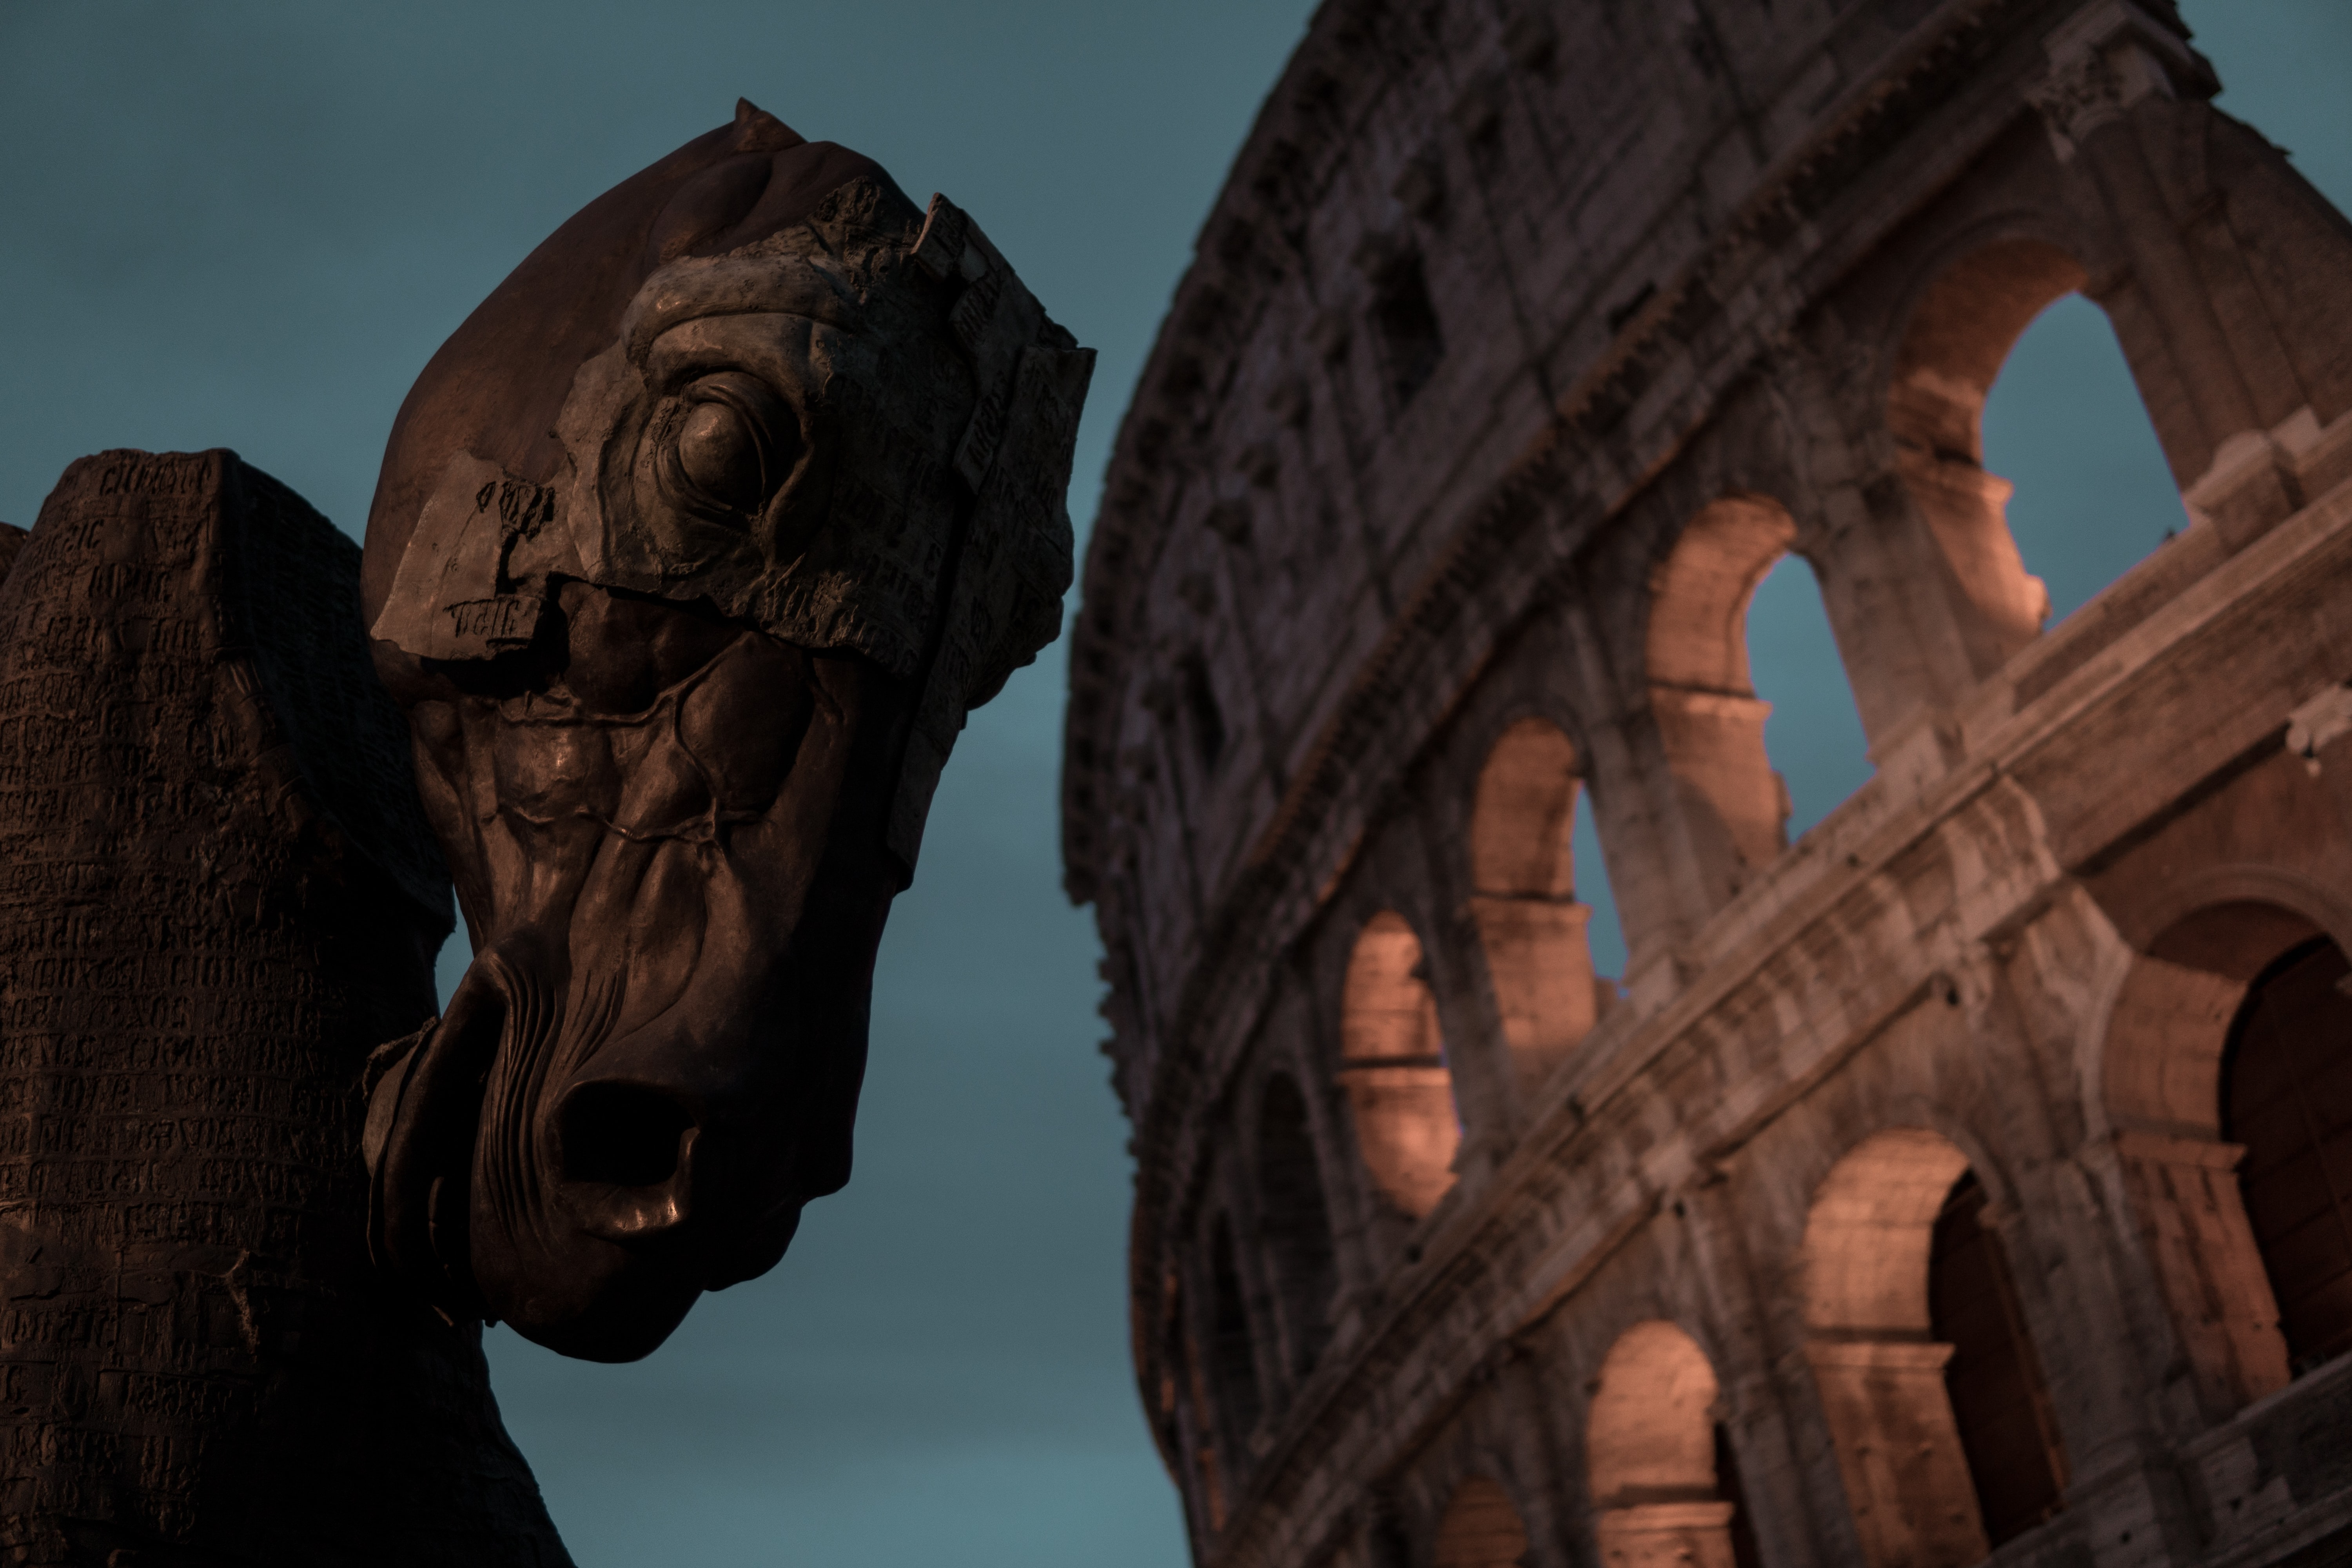 A horse head sculpture next to the Colosseum at dusk